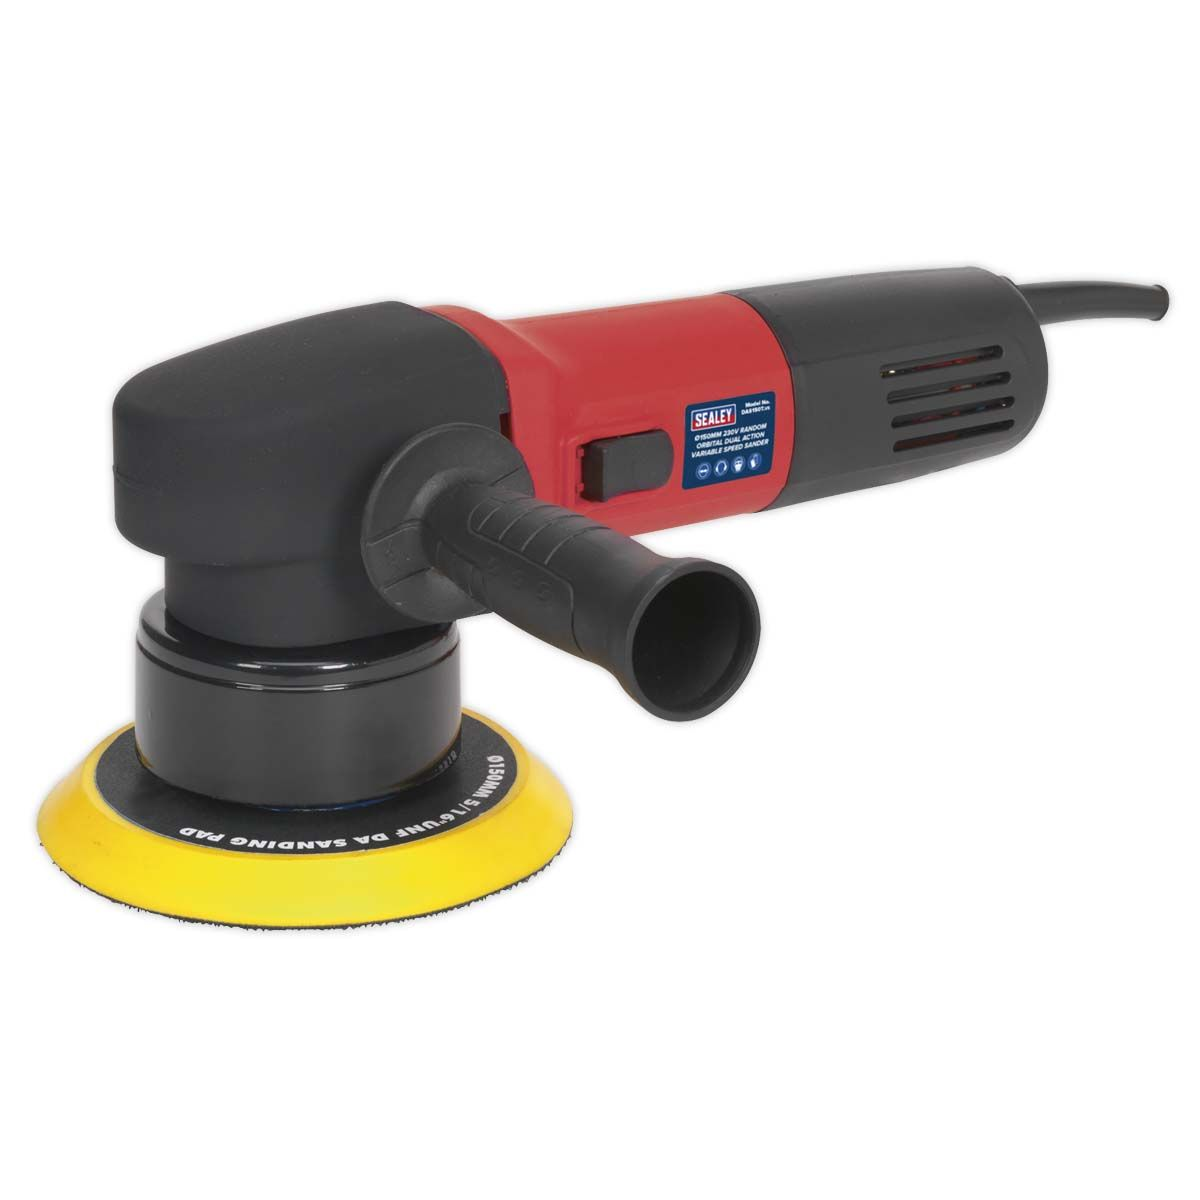 Sealey Random Orbital Dual Action Sander Ø150mm 230V